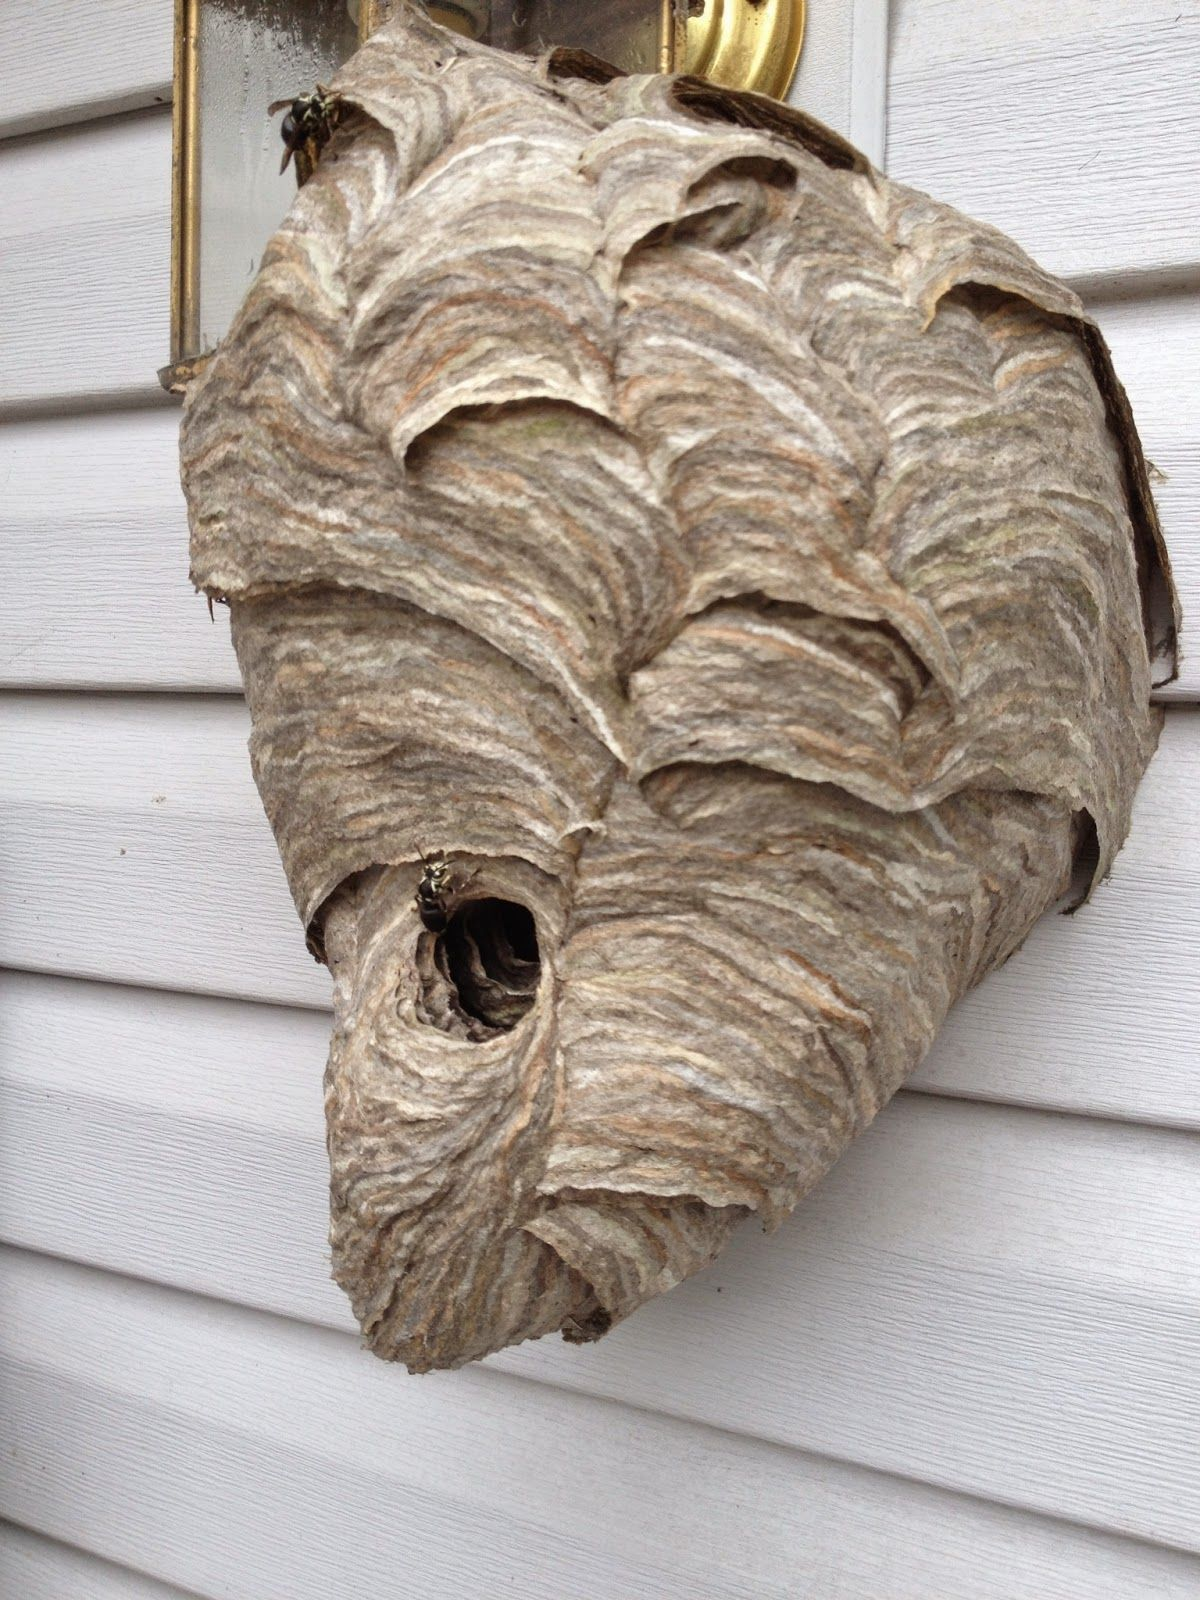 Pictures Of A Hornets Nest On Animal Picture Society Hornets Nest Bald Face Hornet